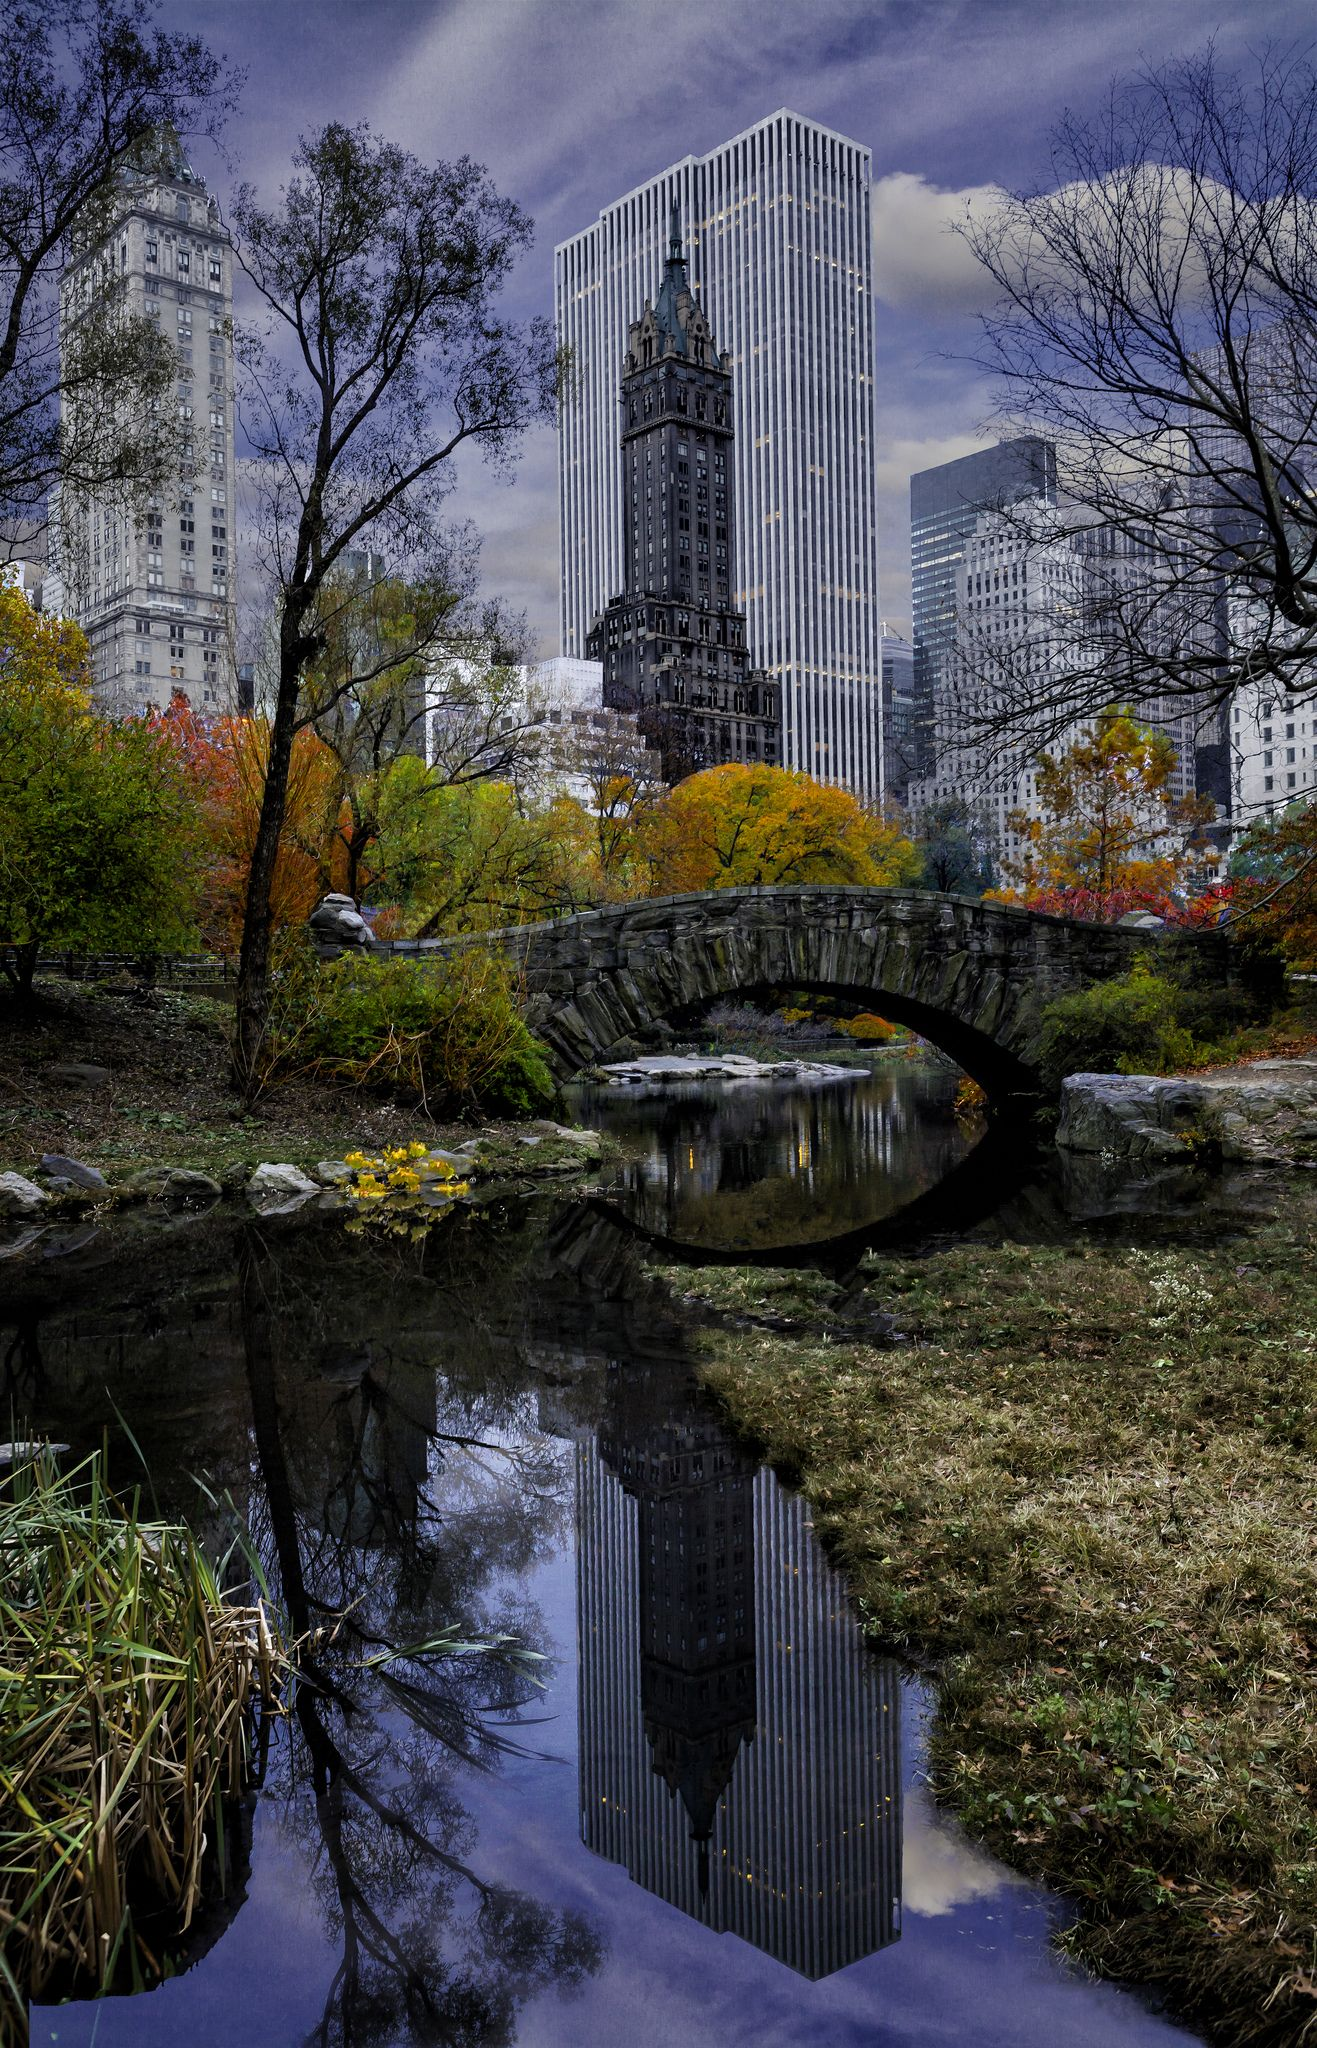 Central Park, New York - Can't wait to go back.